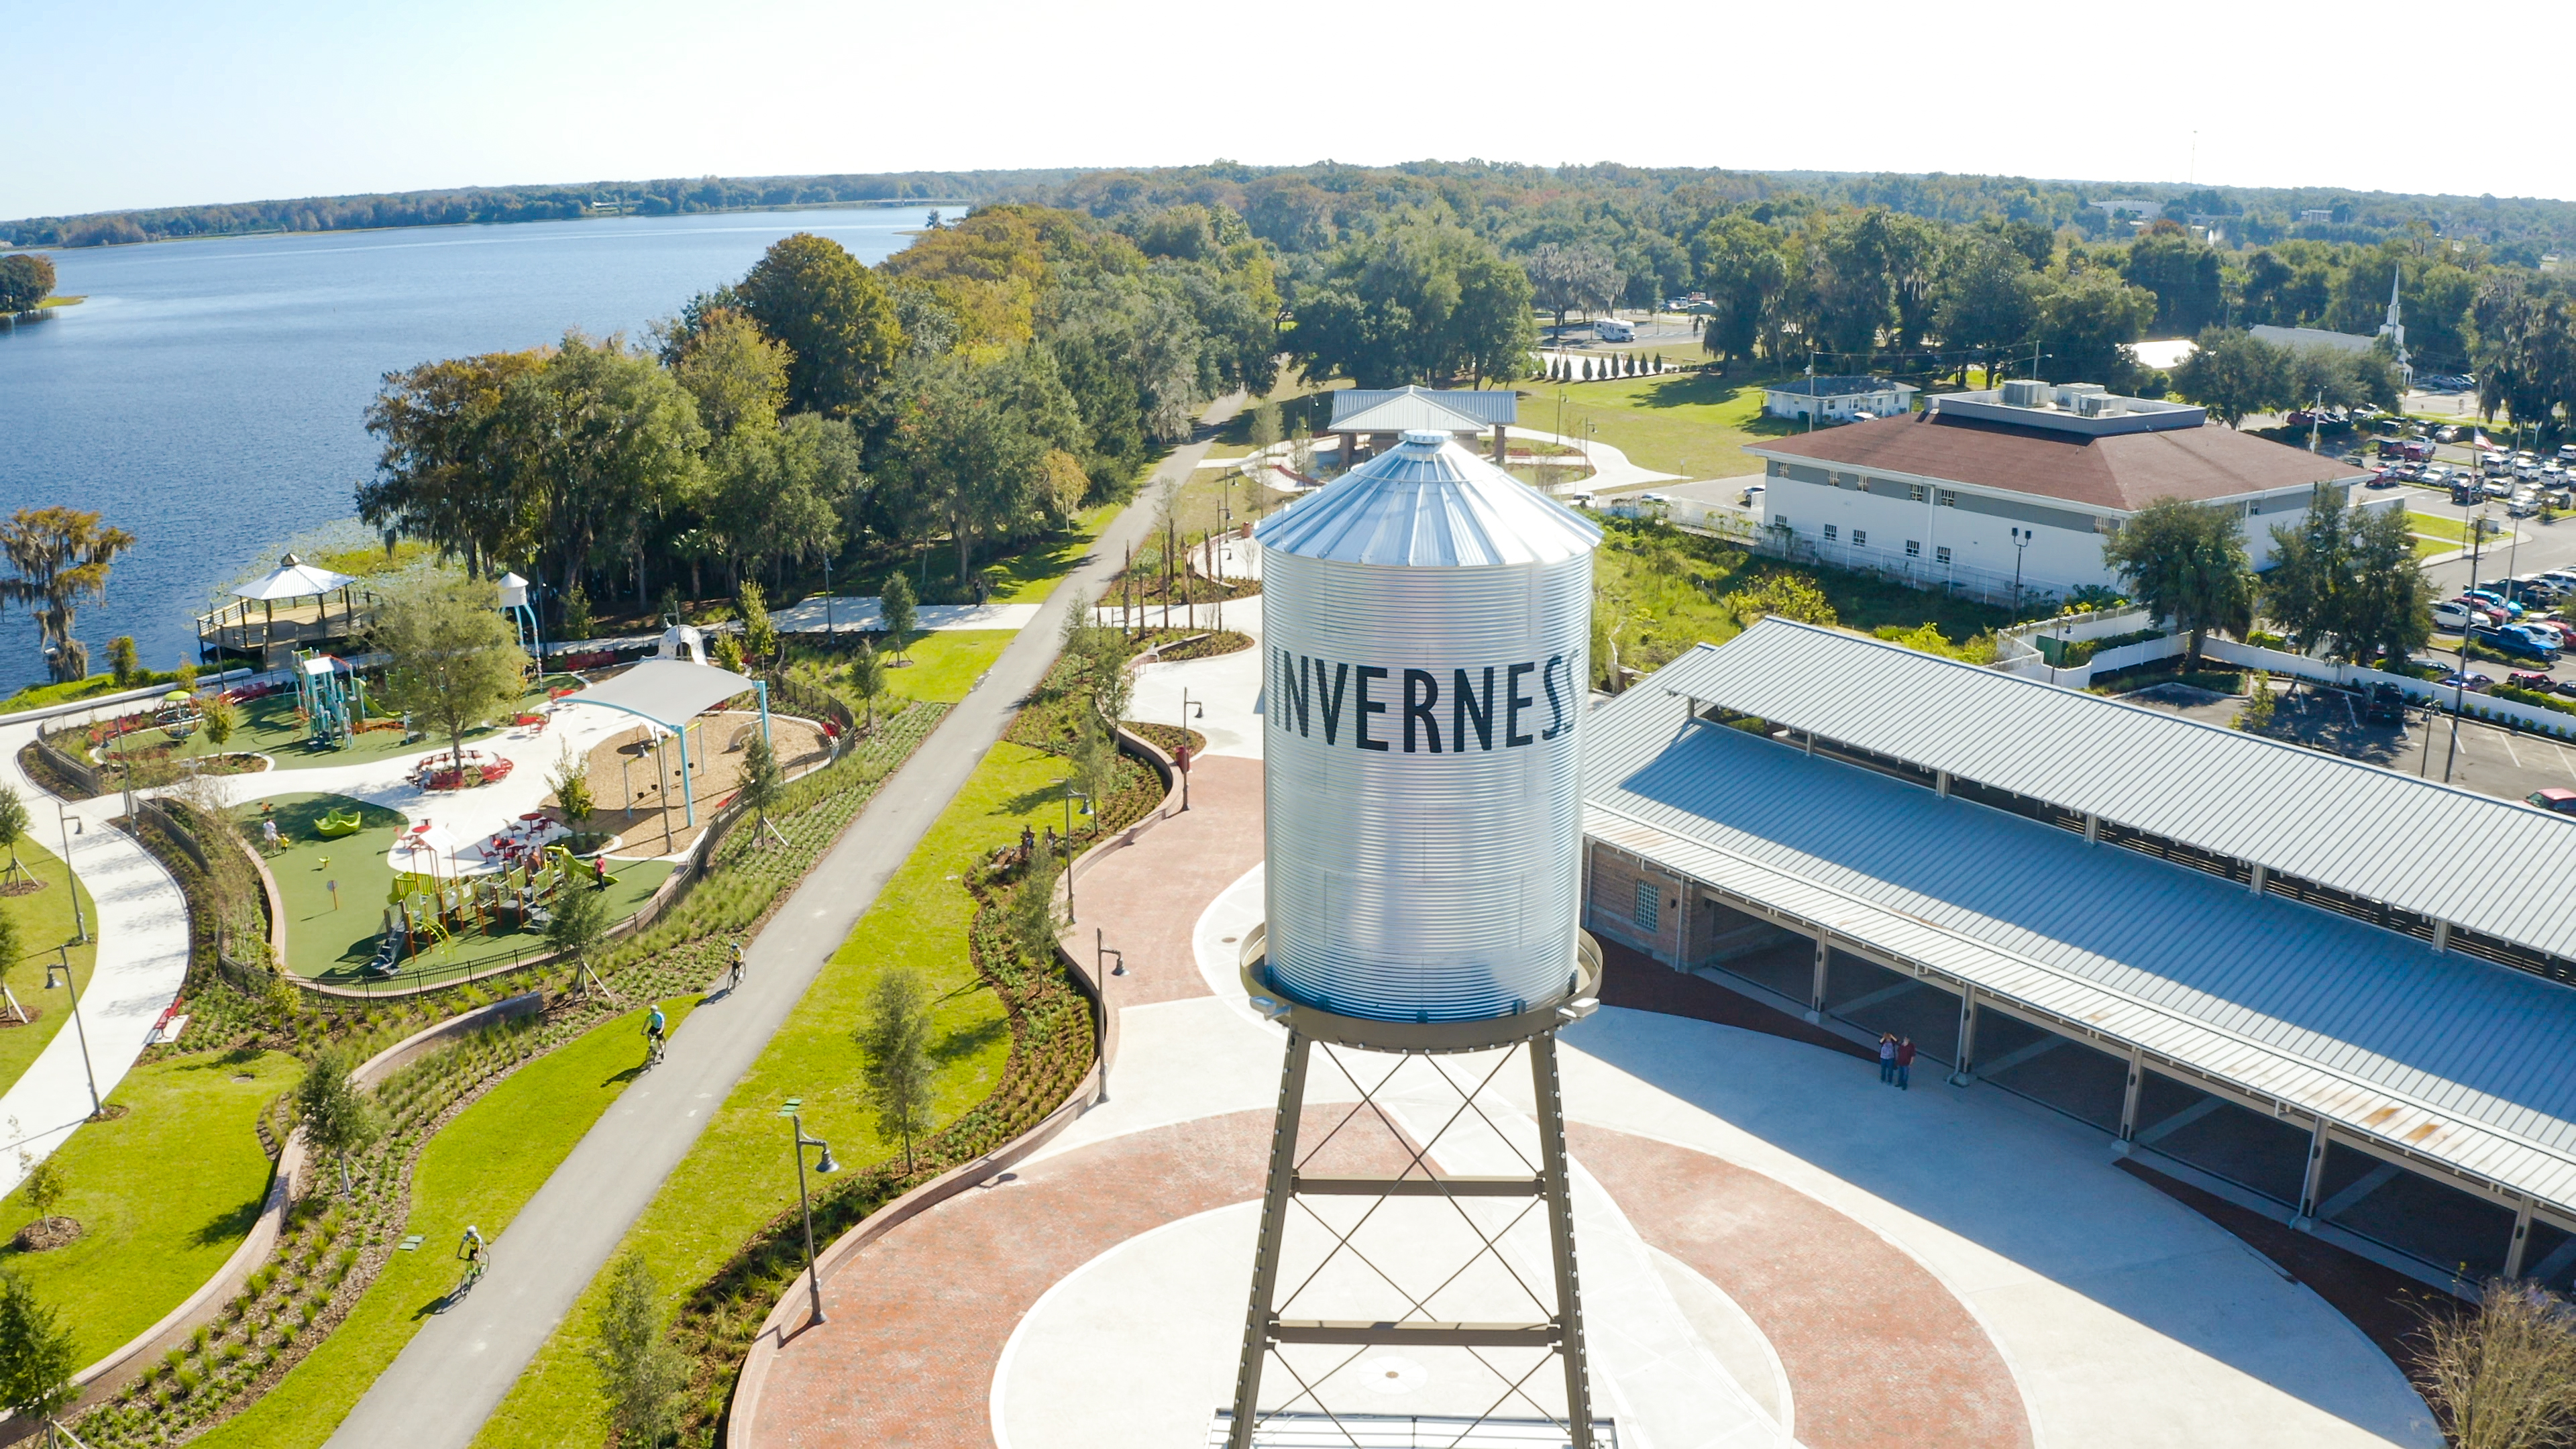 A silver water tower rises above a town.